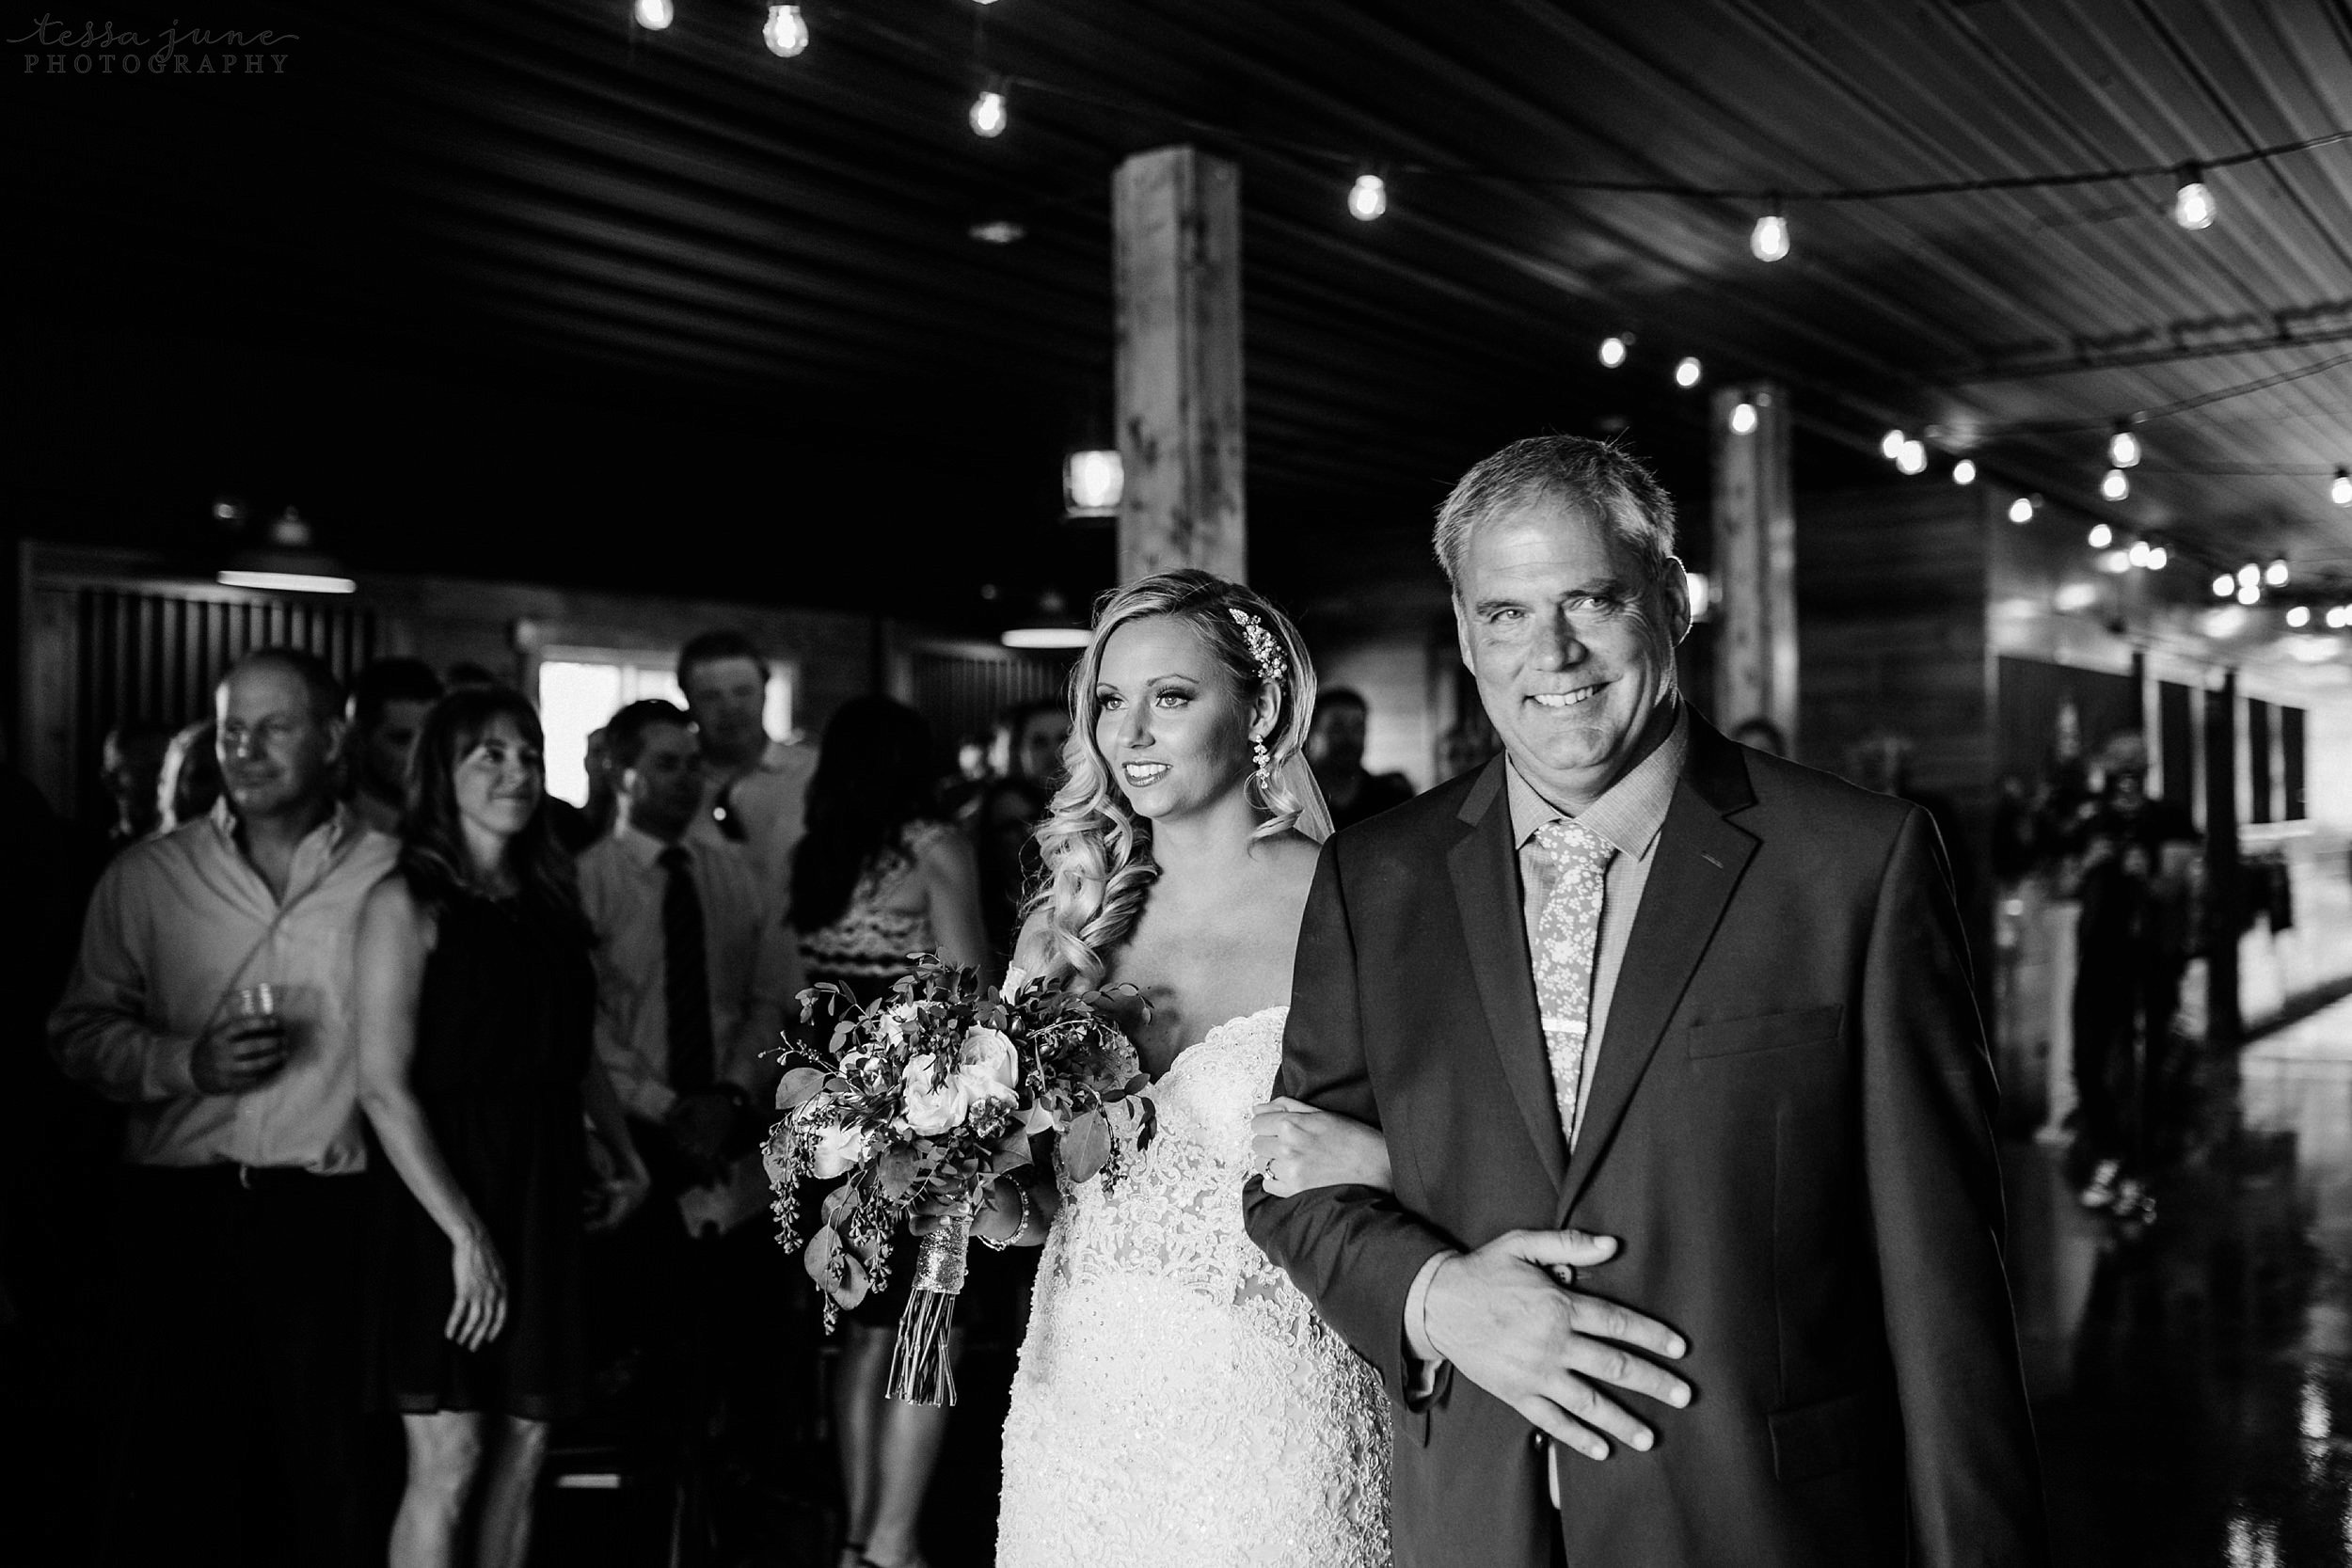 carlos-creek-winery-wedding-alexandria-minnesota-glam-elegant-floral-100.jpg